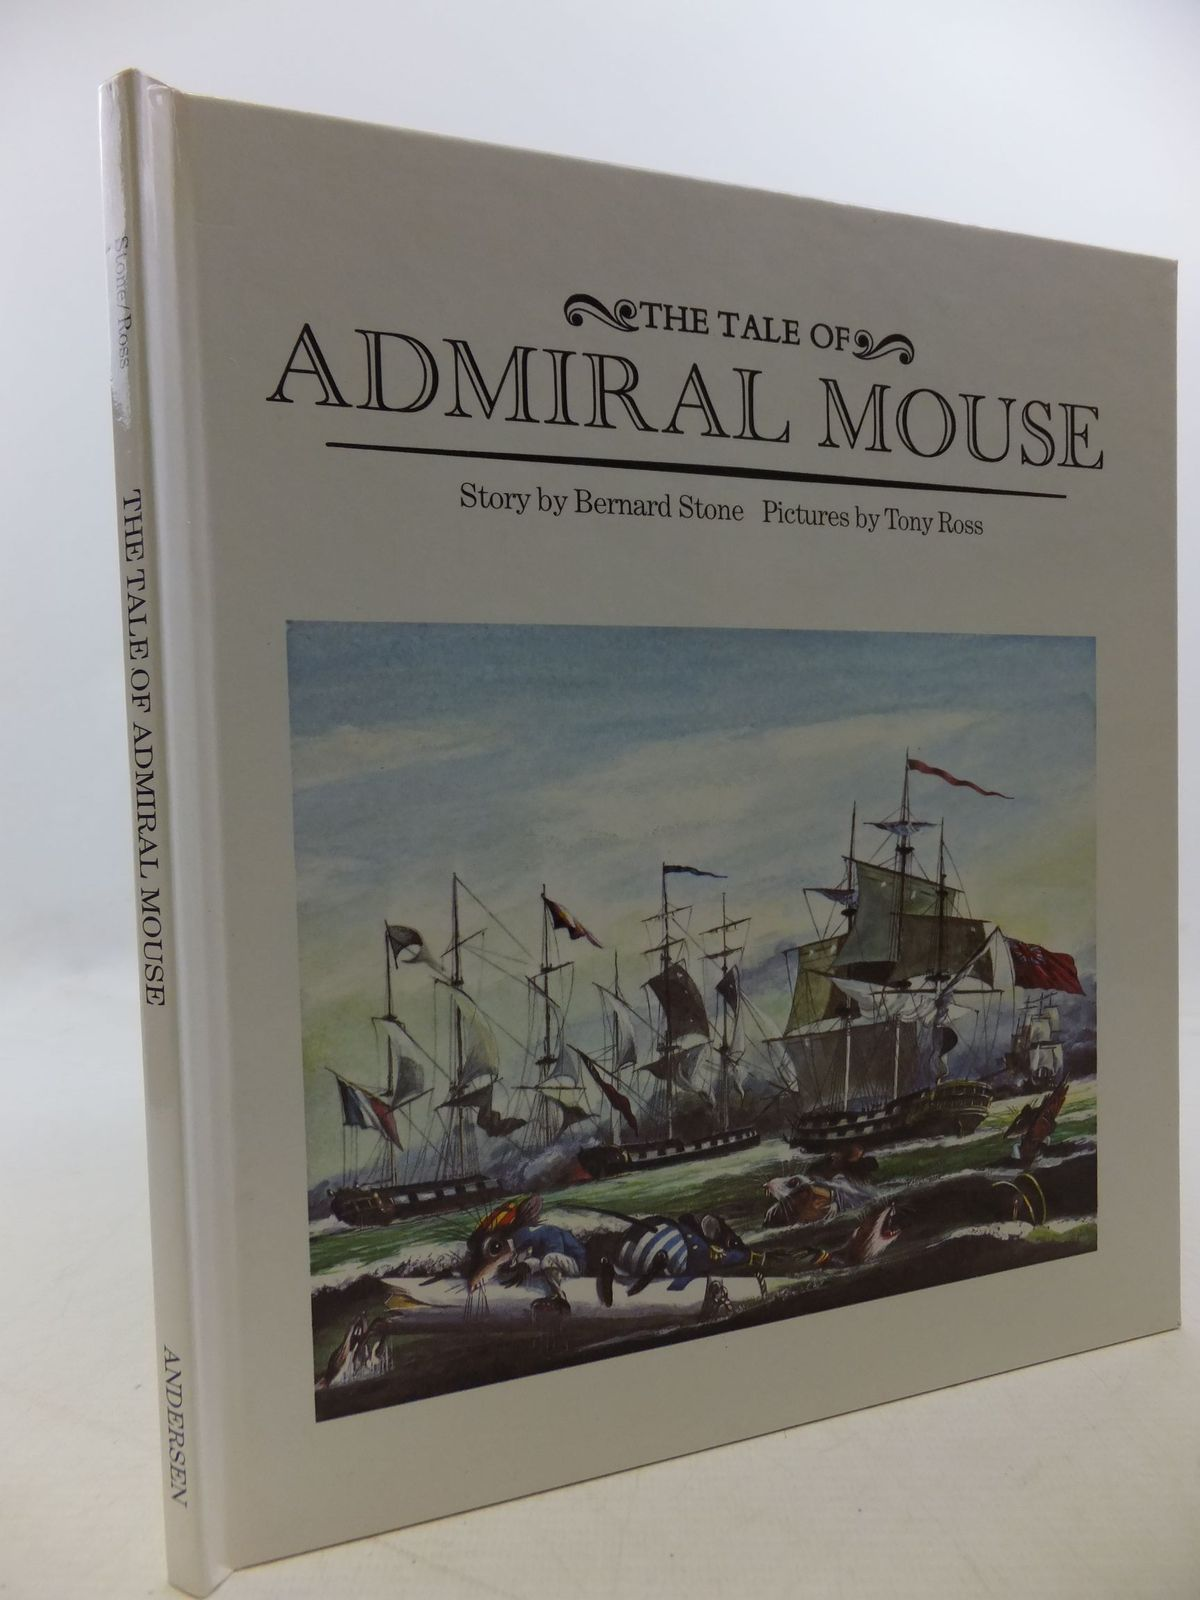 Photo of THE TALE OF ADMIRAL MOUSE written by Stone, Bernard illustrated by Ross, Tony published by Andersen Press Ltd. (STOCK CODE: 1710160)  for sale by Stella & Rose's Books